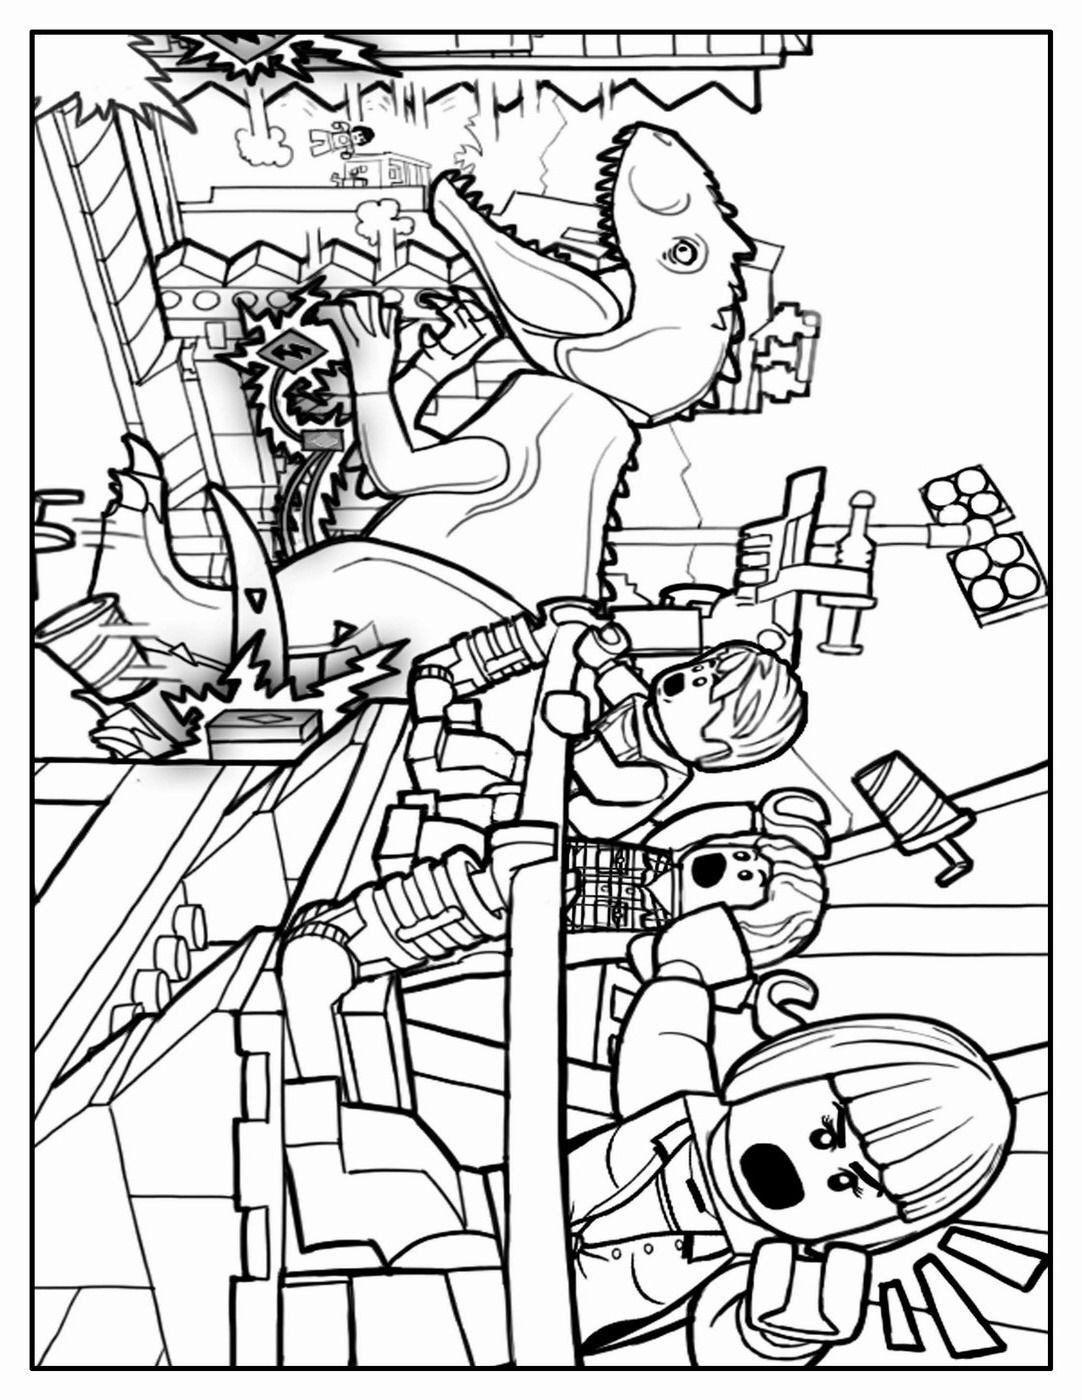 30 Inspirational Jurassic World Coloring Pages in 2020 ...